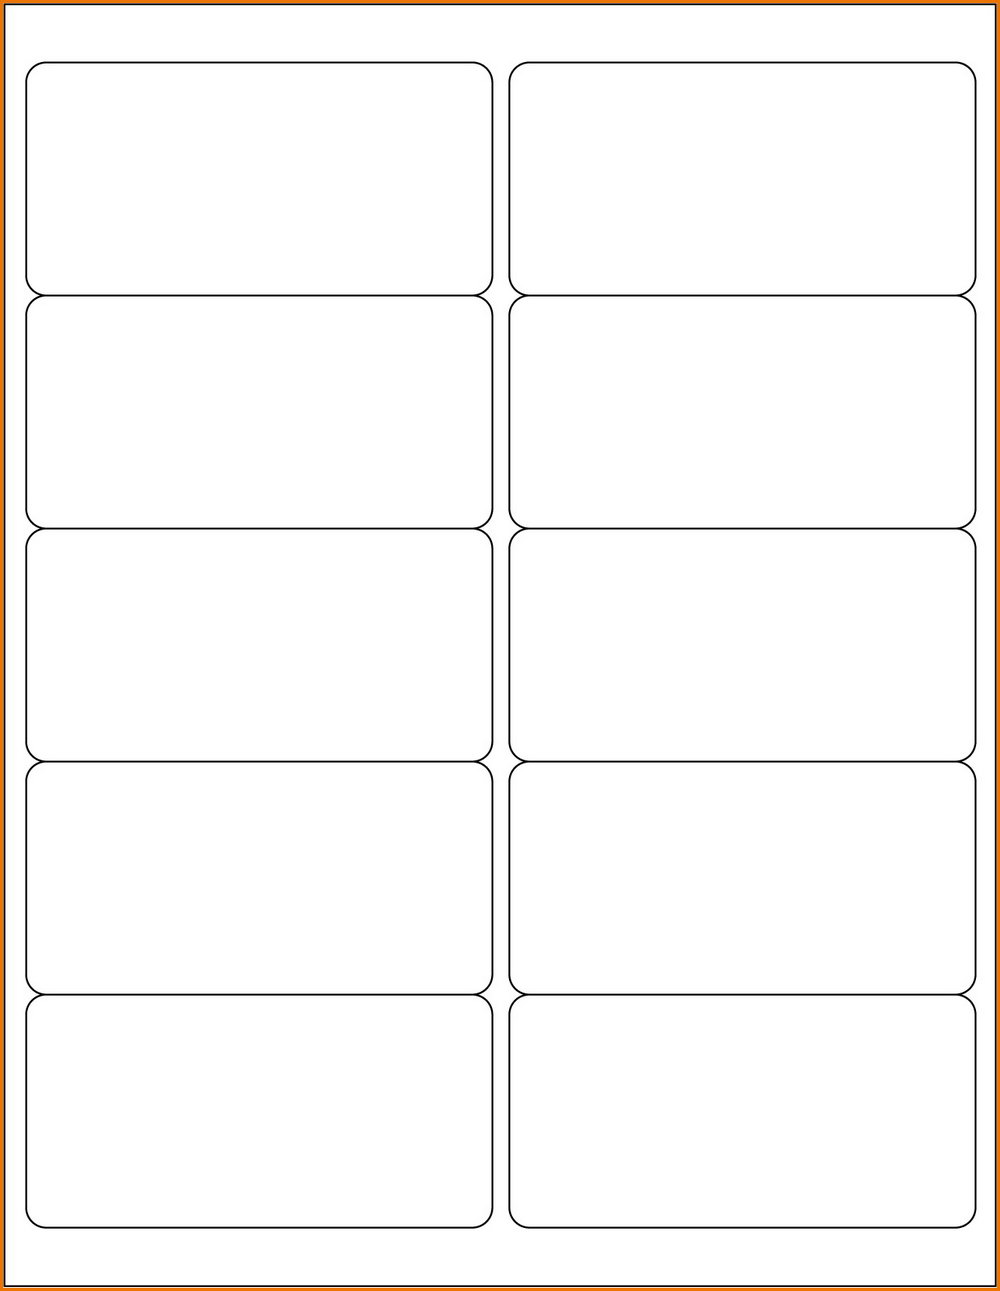 2x4 Label Template Google Docs